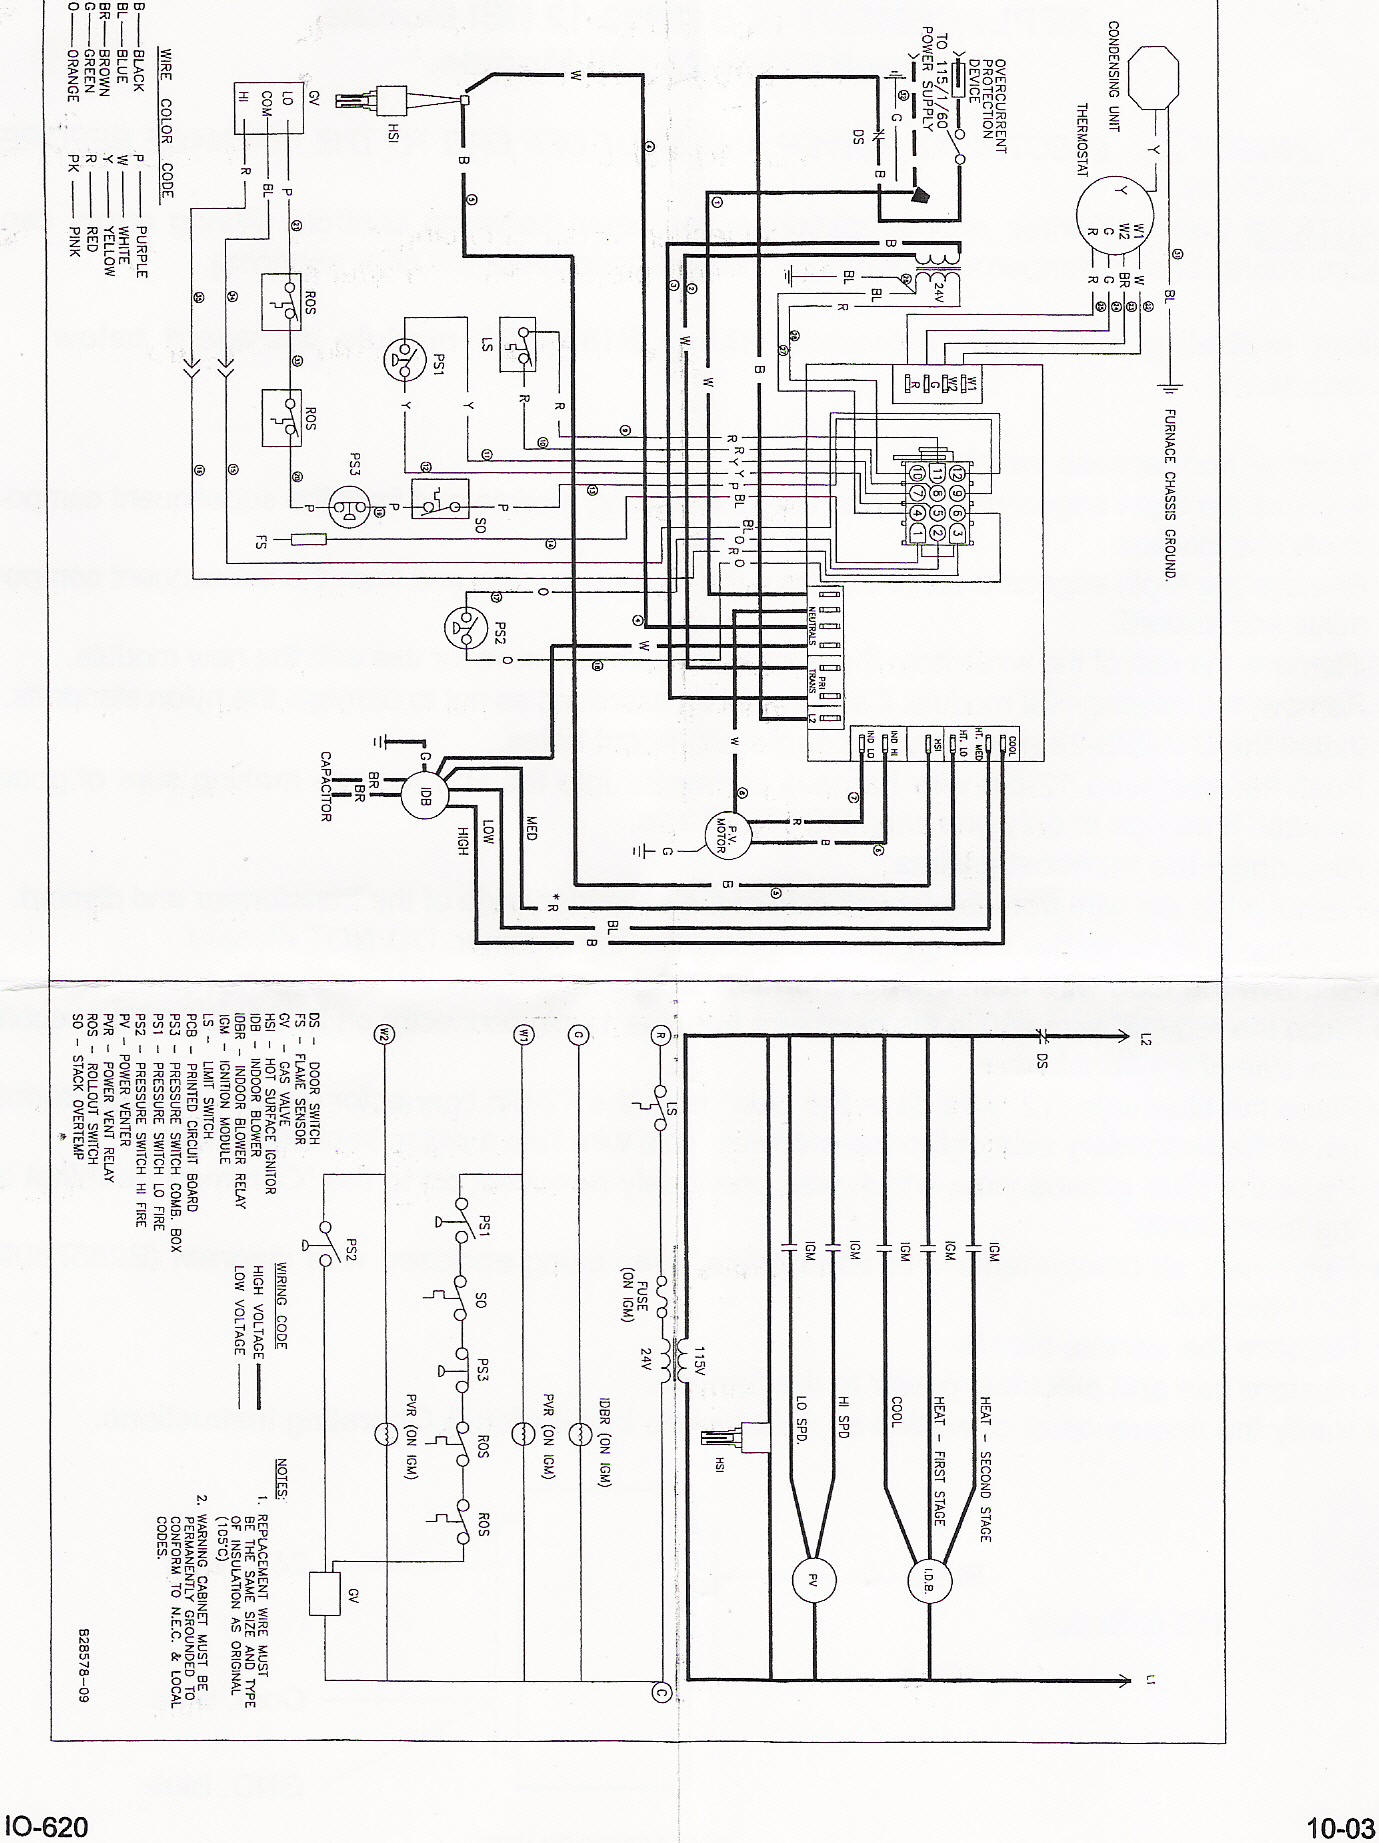 Goodman Control Board B18099-23 Instructions